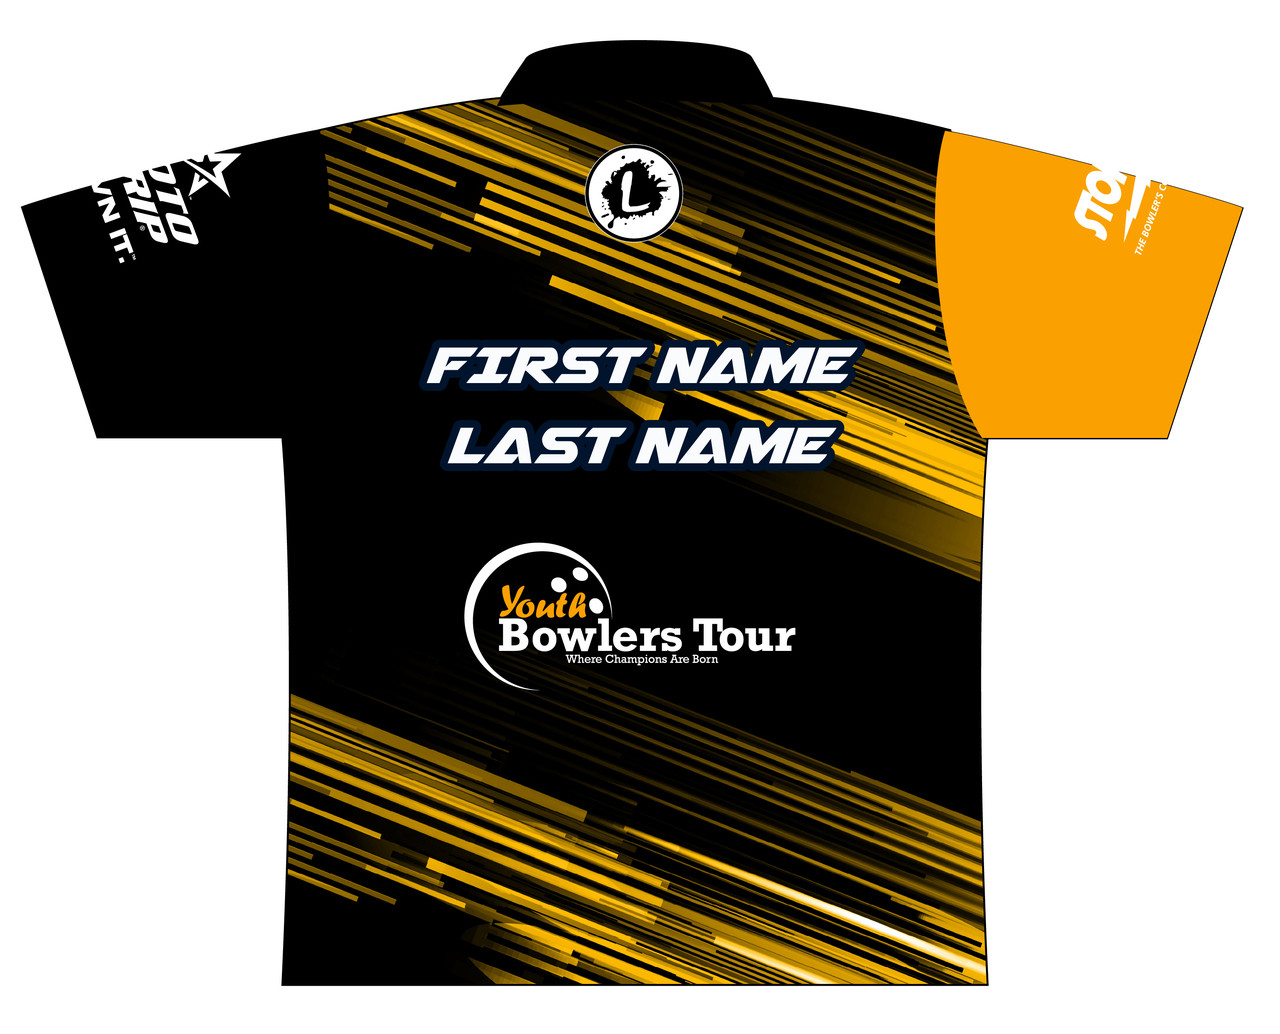 Youth Bowlers Tour - YBT - Dye Sublimated Jersey - YBT003